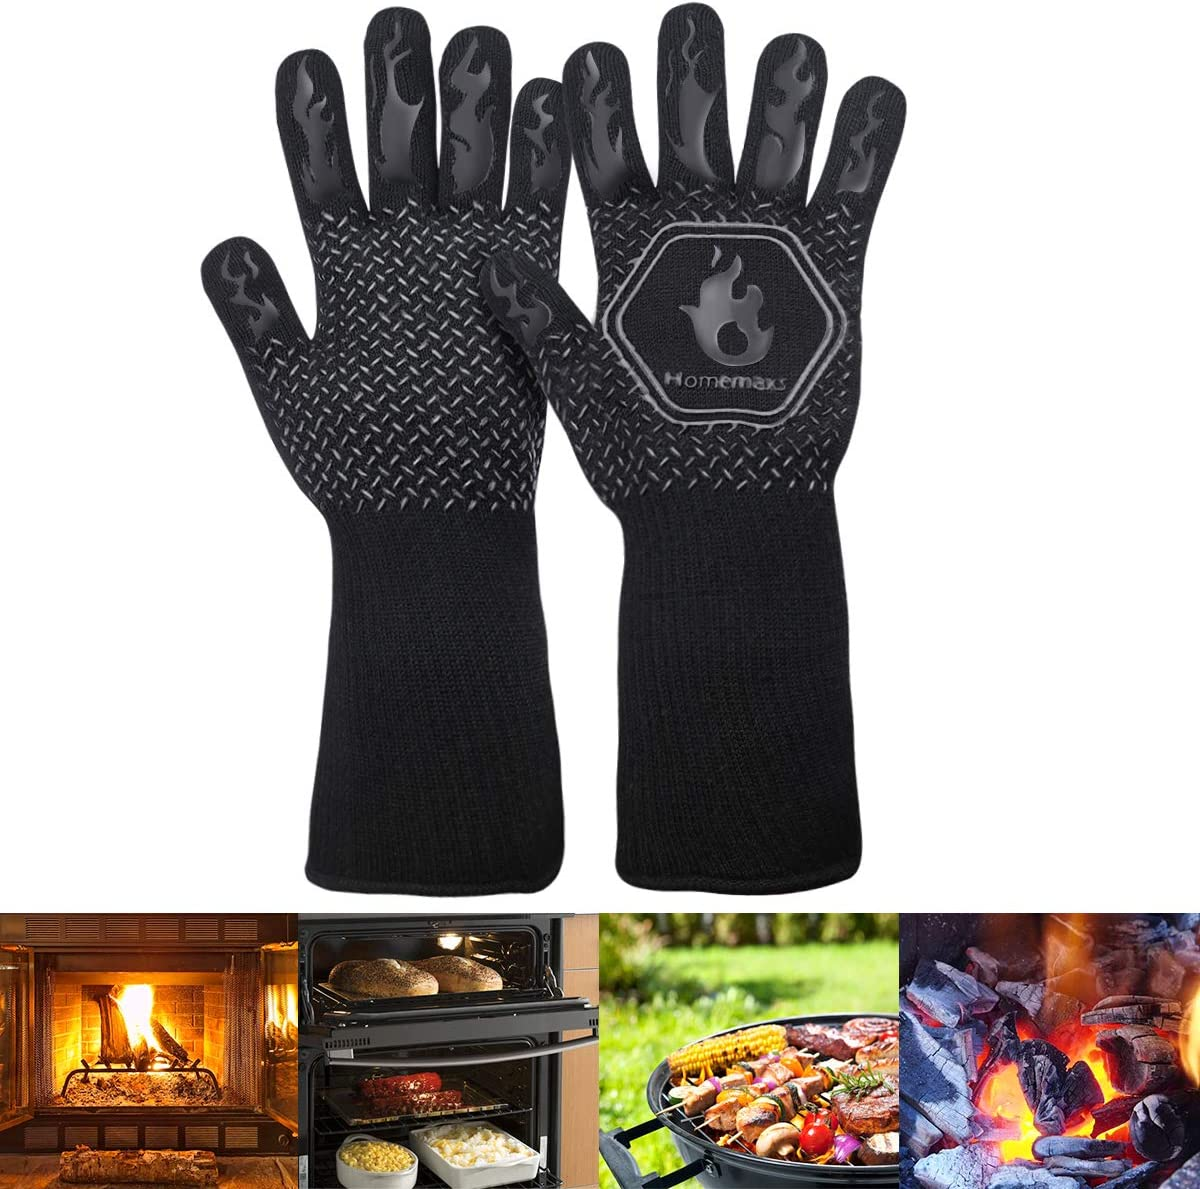 BBQ Gloves,Extreme Heat Resistant Grill Gloves, Food Grade Kitchen Oven Mitts, Silicone Non-Slip Cooking Gloves -Black